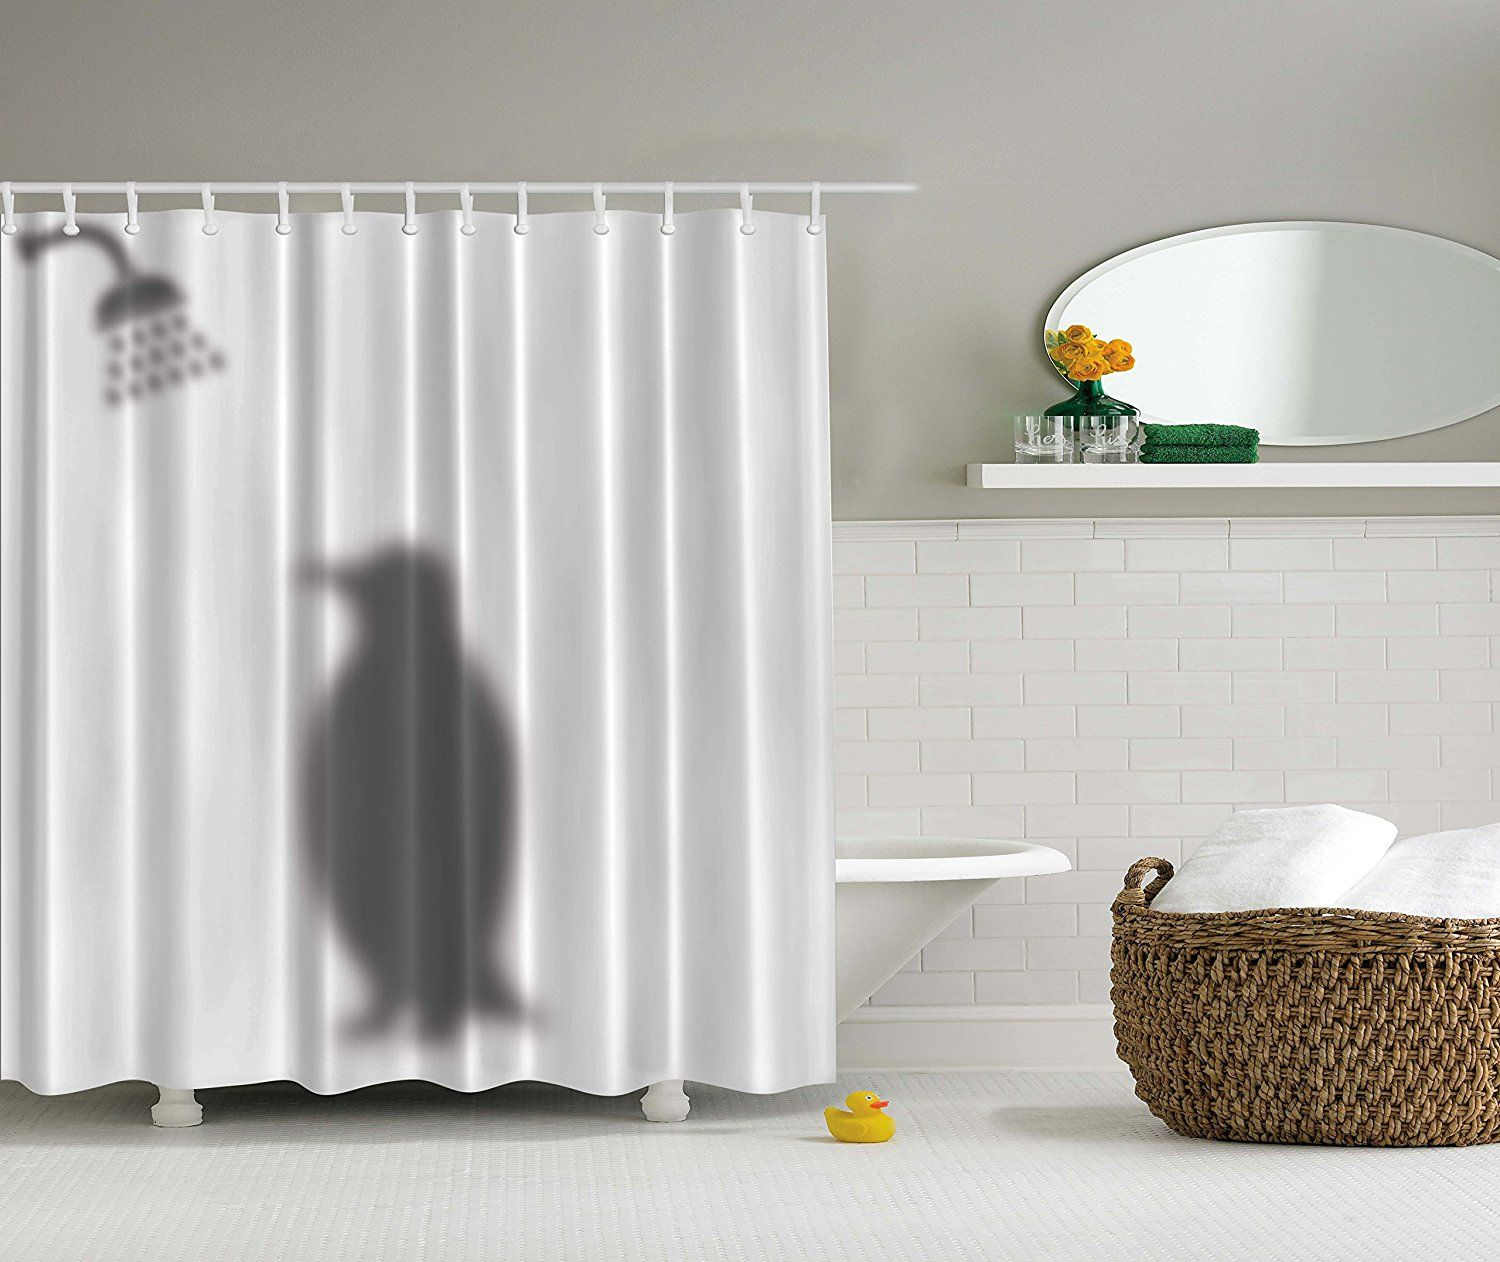 set sets shower curtains grand and walmart styles awesome curtain concept pict bathroom of